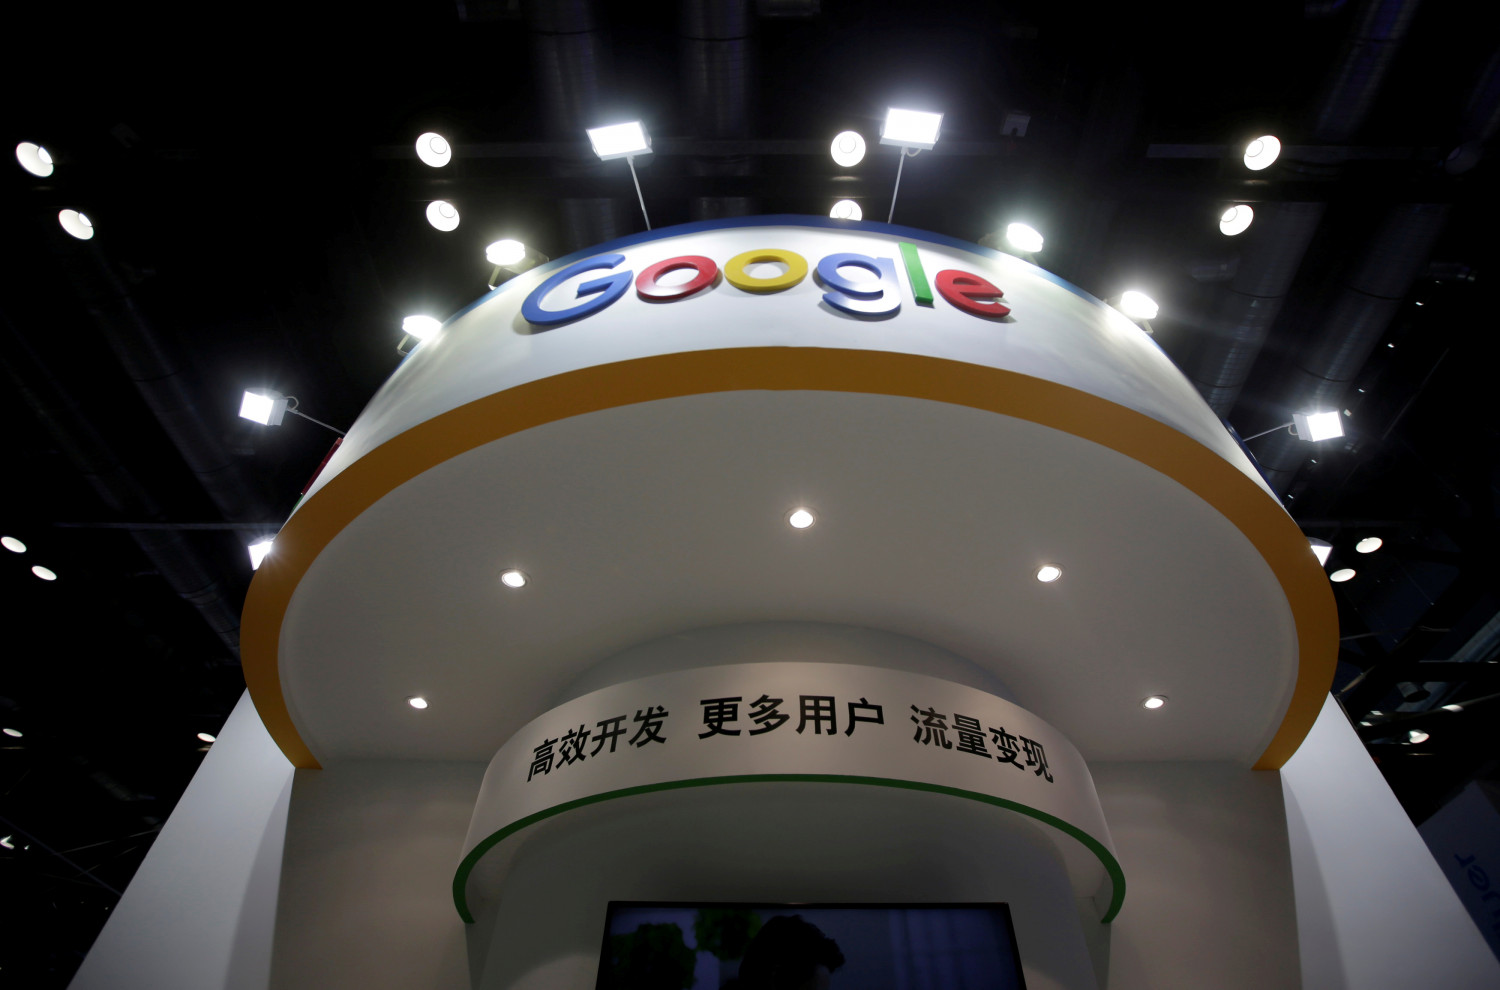 Google's booth is pictured